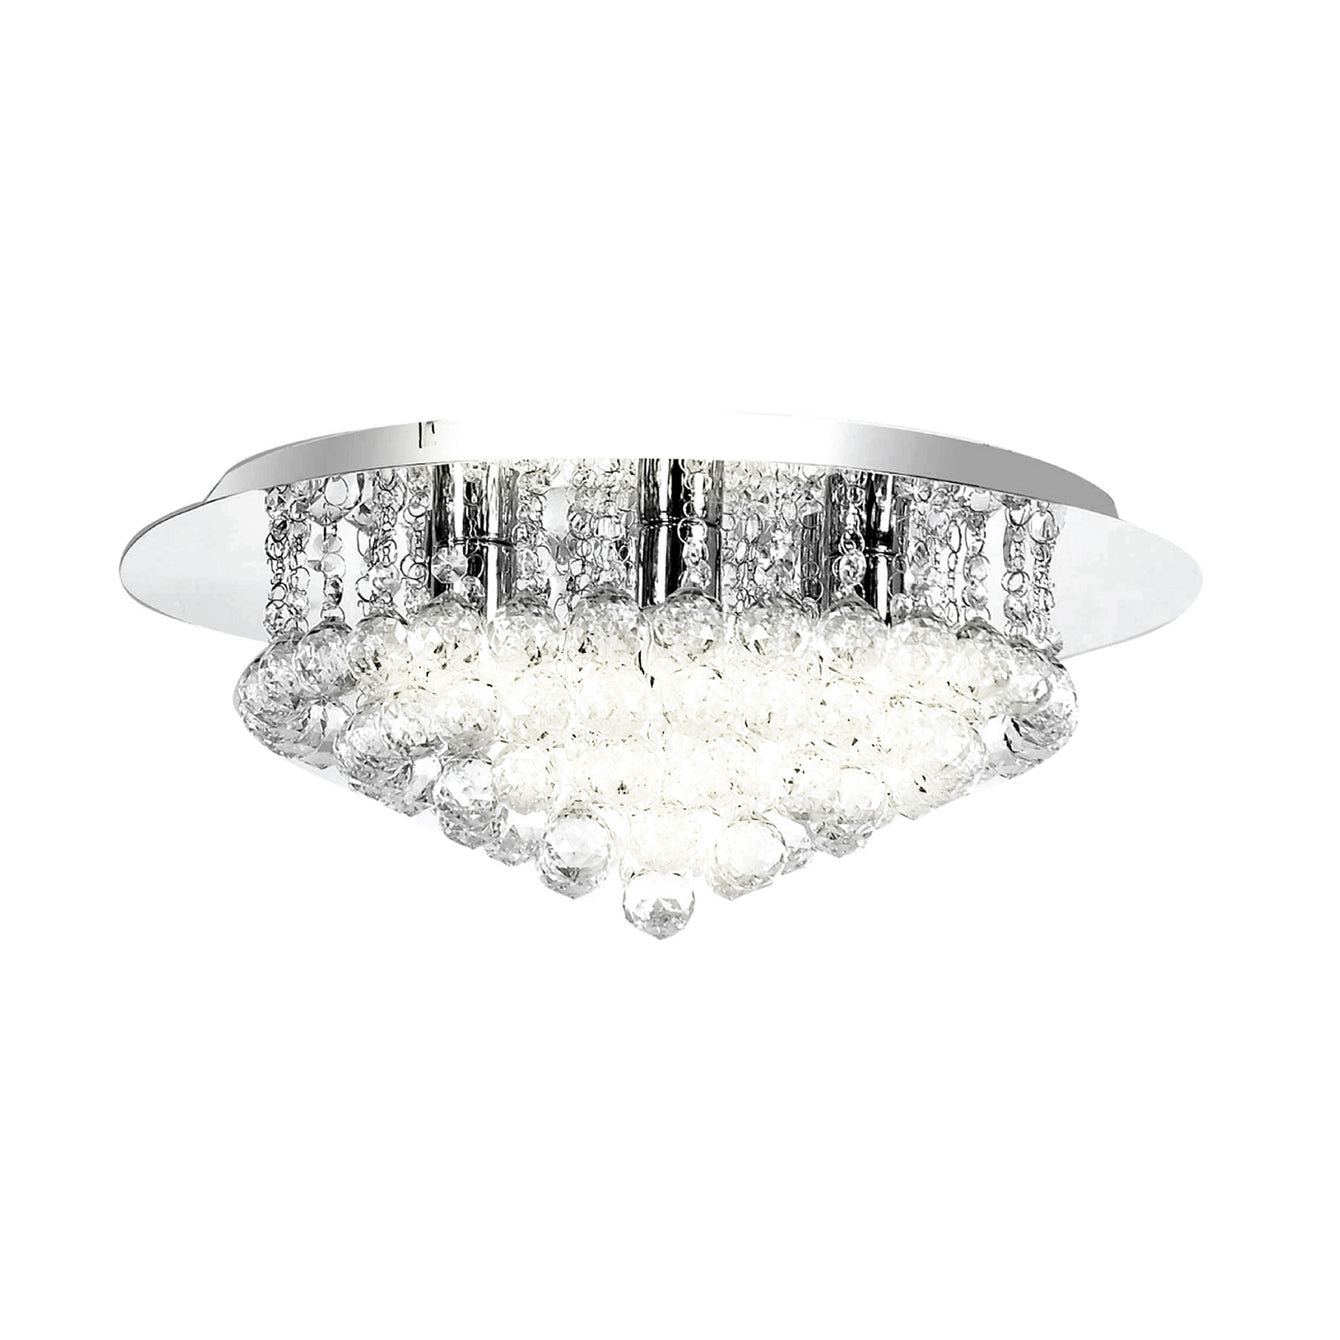 Hyde Park 6 and 8 Arm Pendant LED Light - Buy It Better